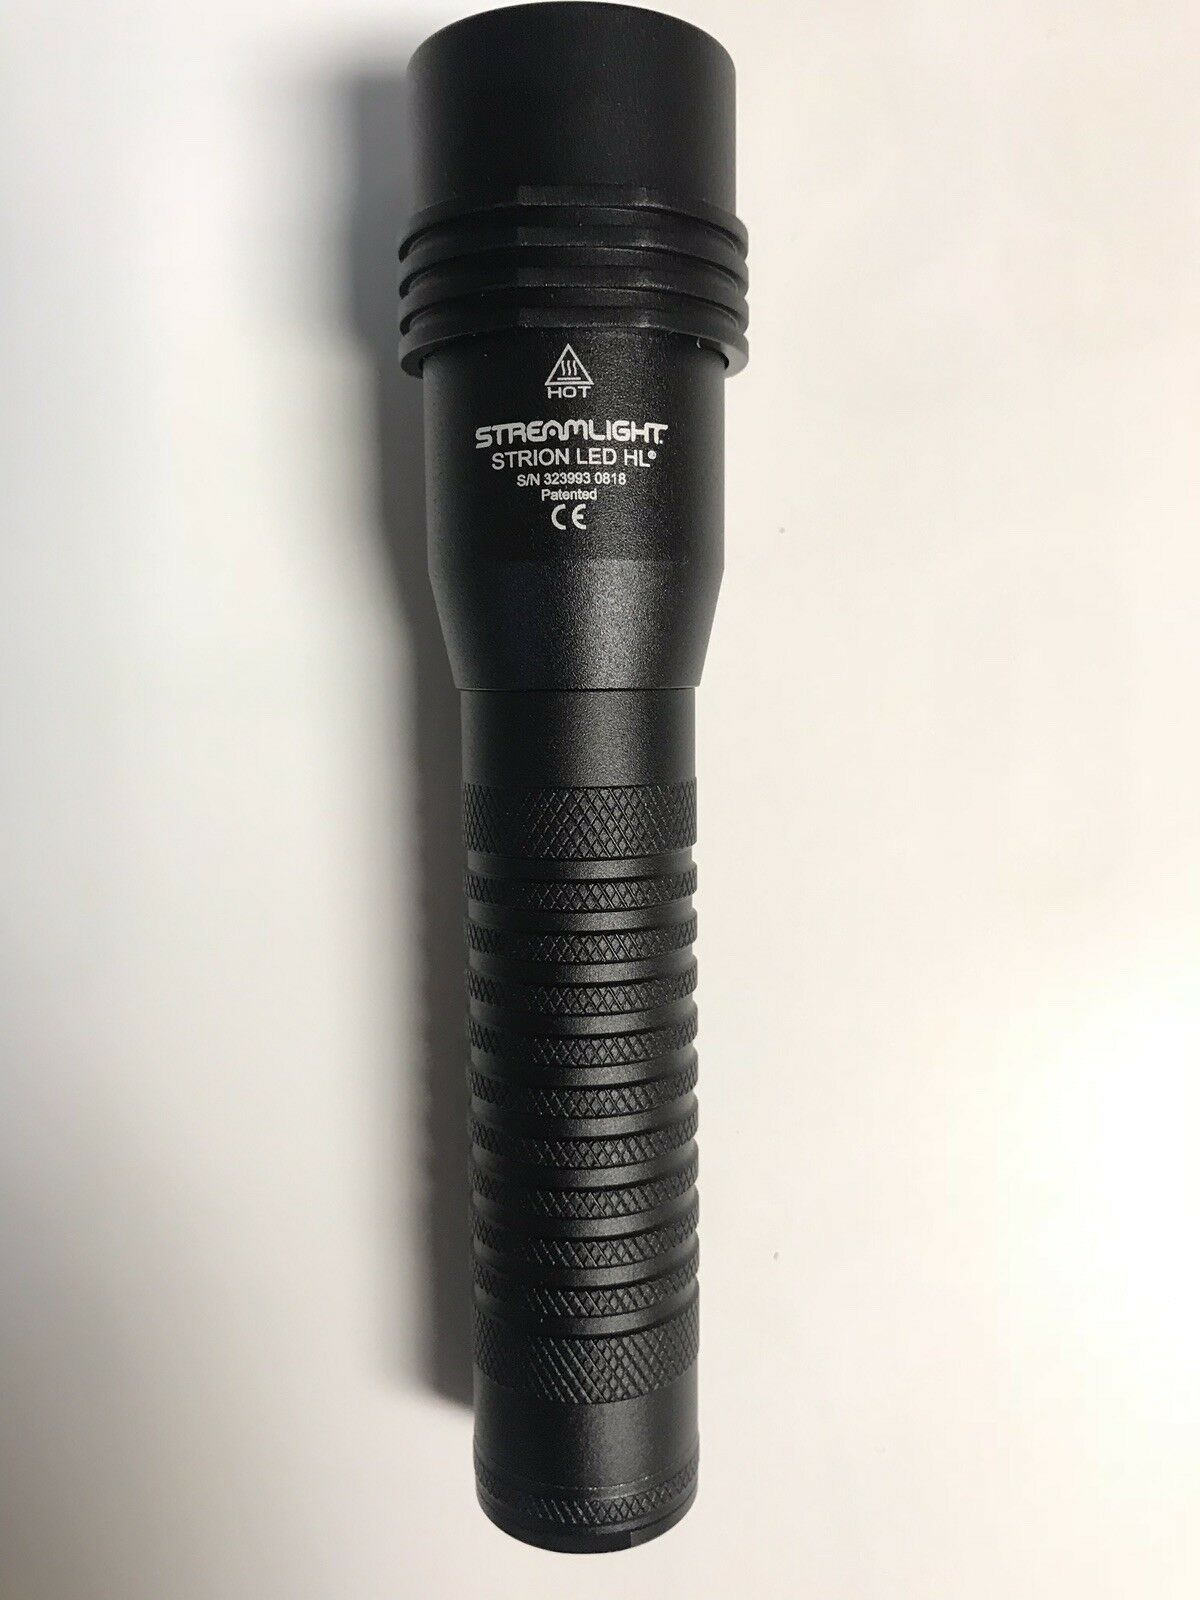 Streamlight Strion 74767 LED HL 74767 Strion 5cc9c4